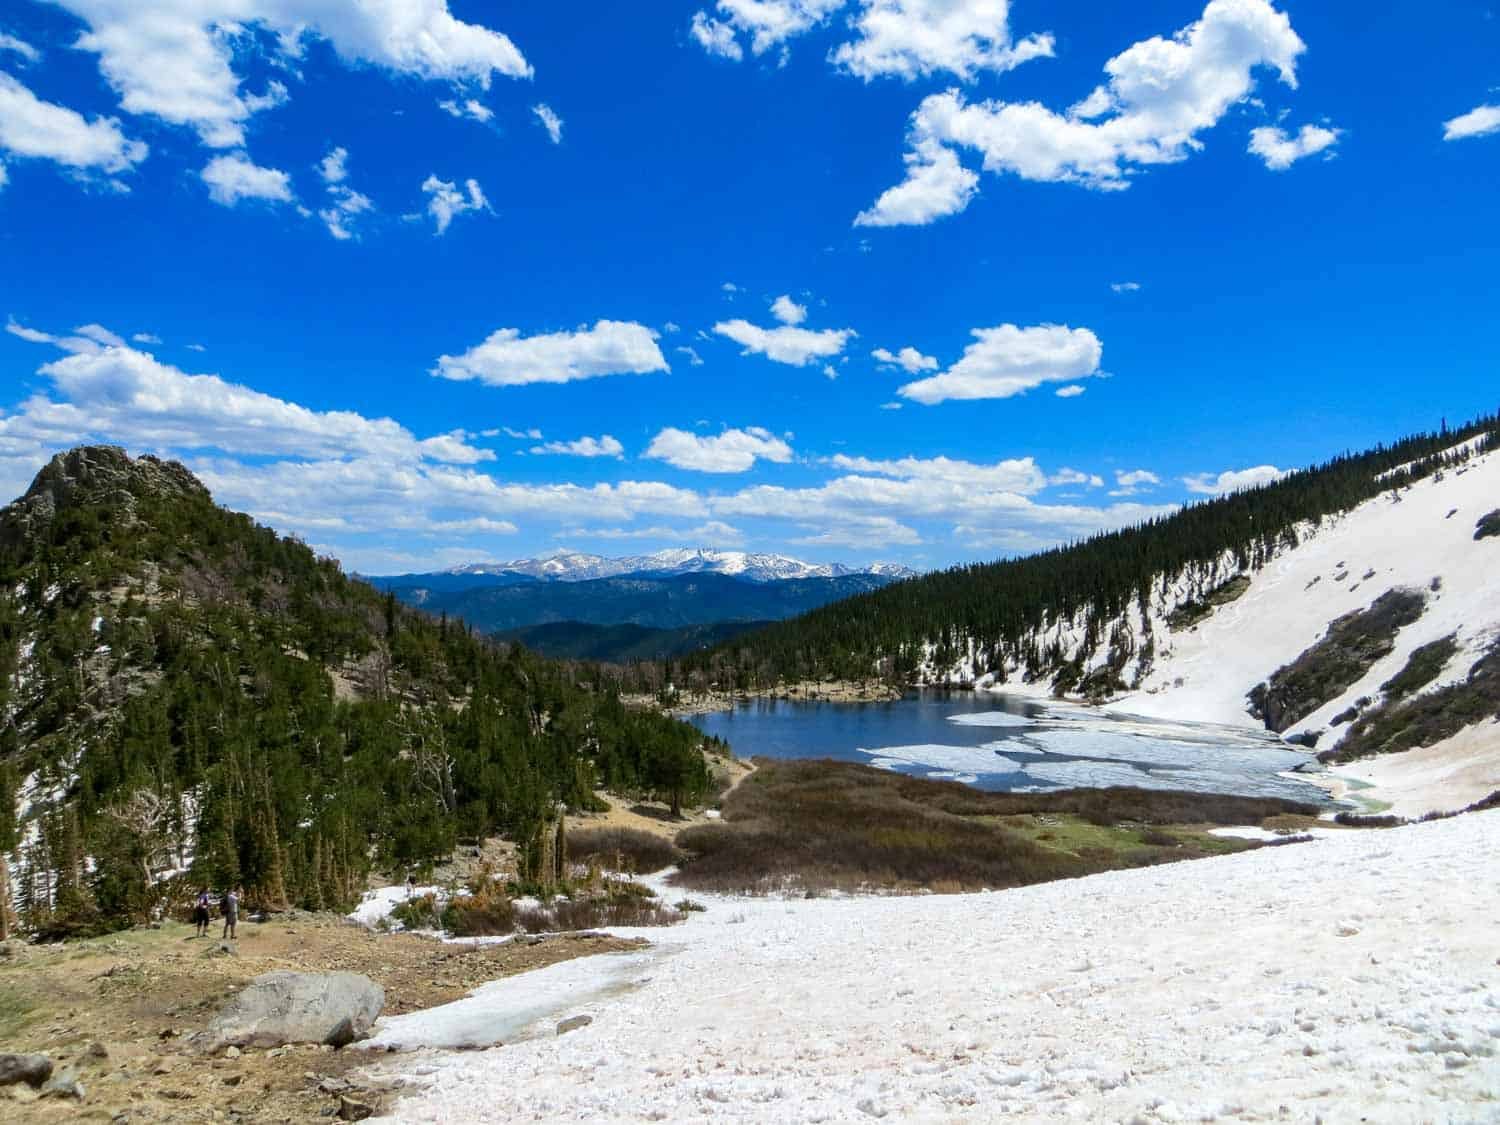 st marys glacier near idaho springs colorado header with snowcapped mountains in background